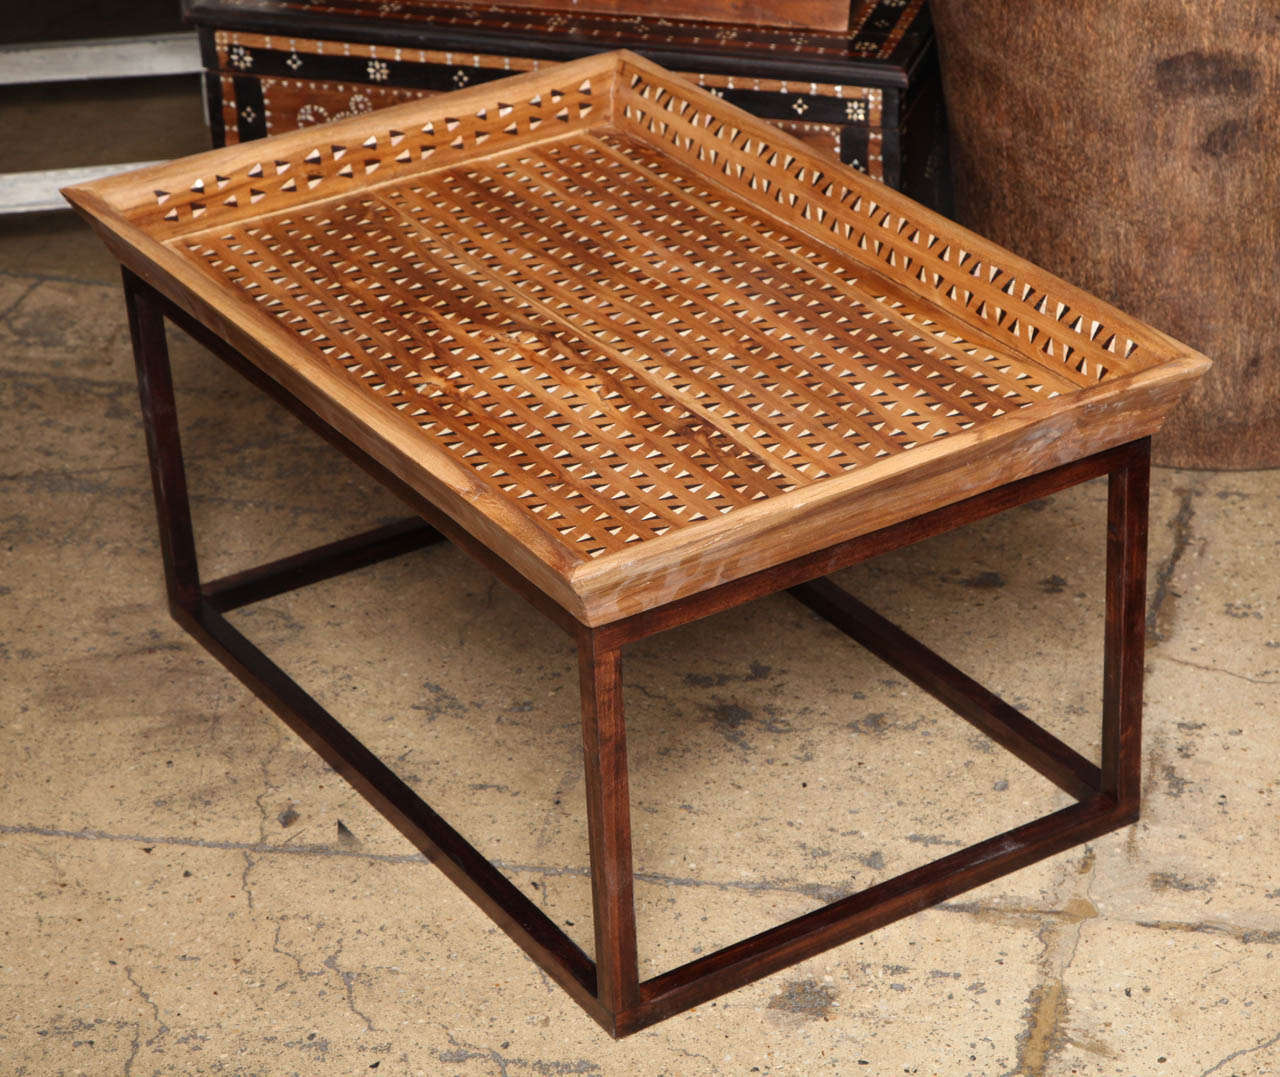 Tray Coffee Table Sale: Inlaid Tray Top Coffee Table For Sale At 1stdibs